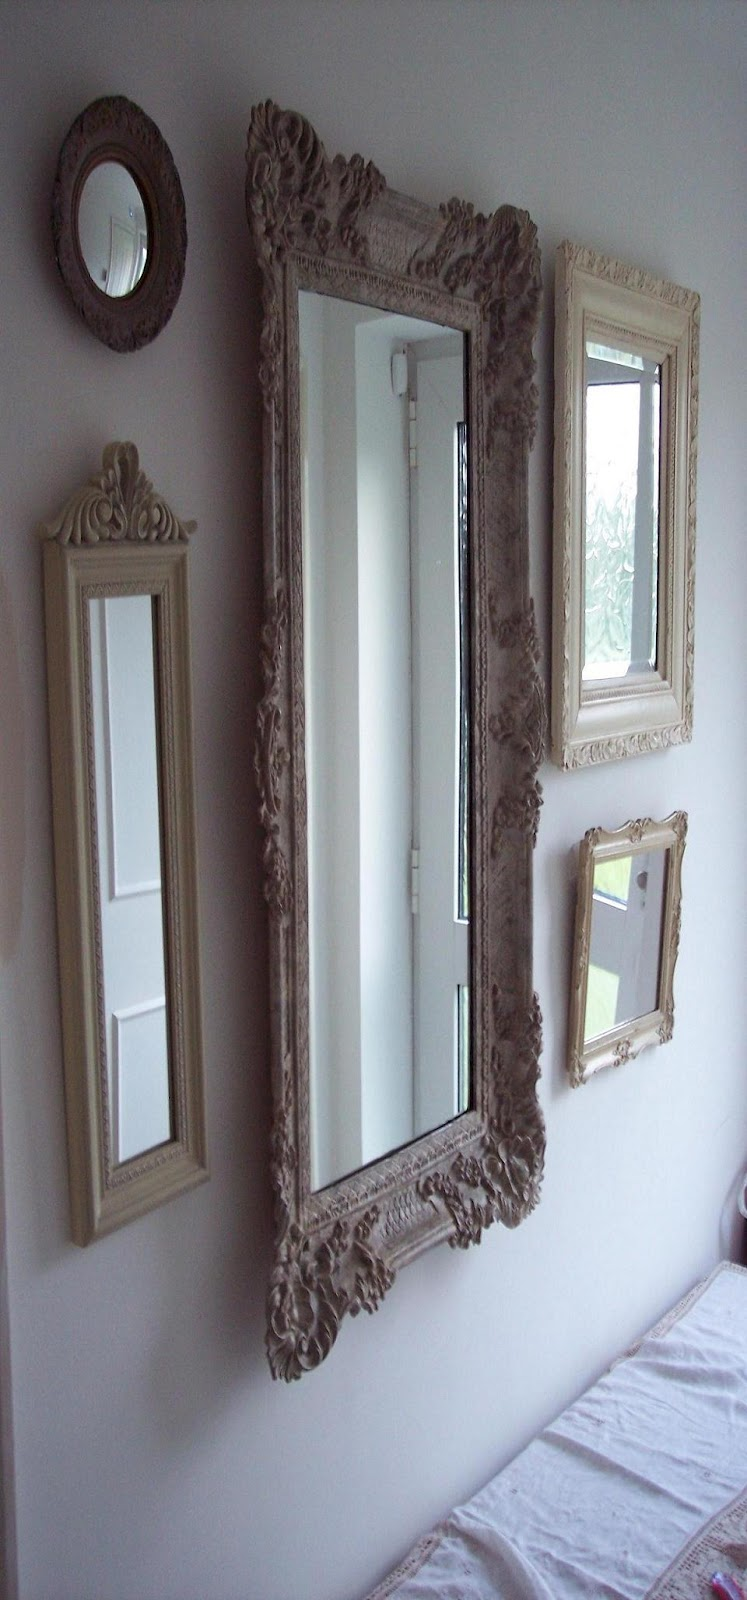 Mirror Frames For Bathrooms: Paint And Style: Painted Mirror Frames